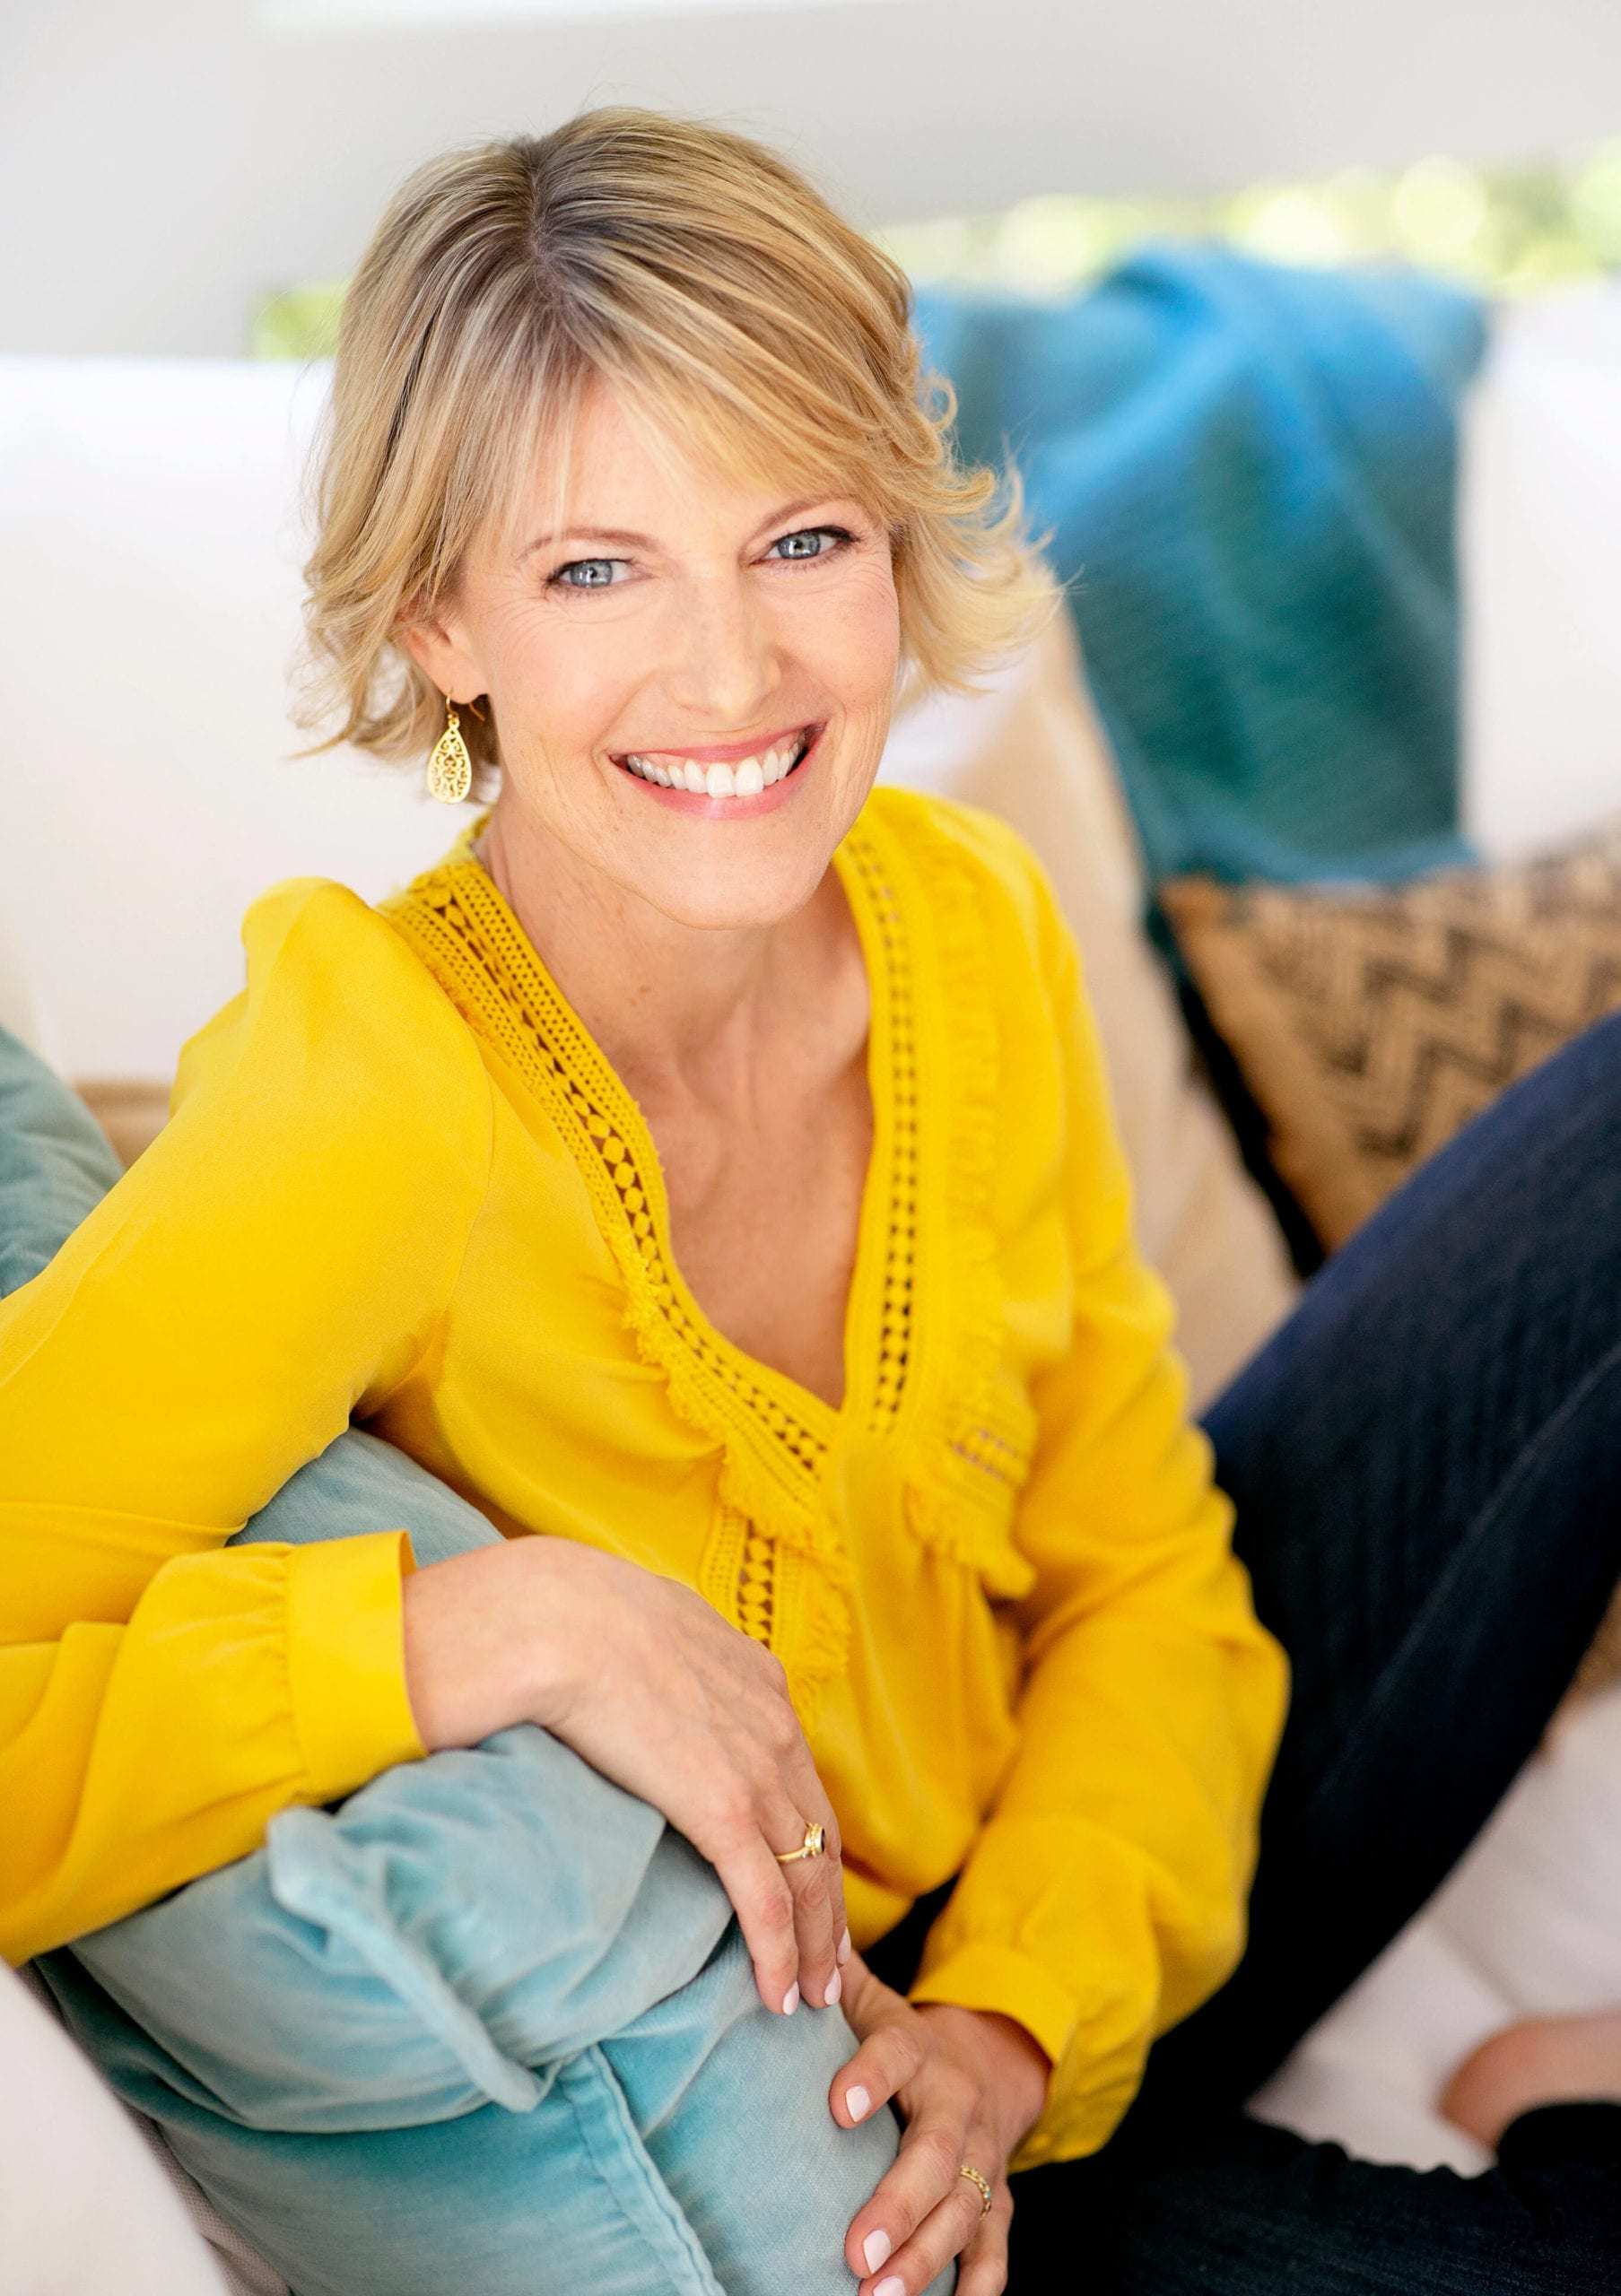 Elizabeth Hunter Diamond, professional clairvoyant and energy healer, sitting on white couch with teal blue pillows.